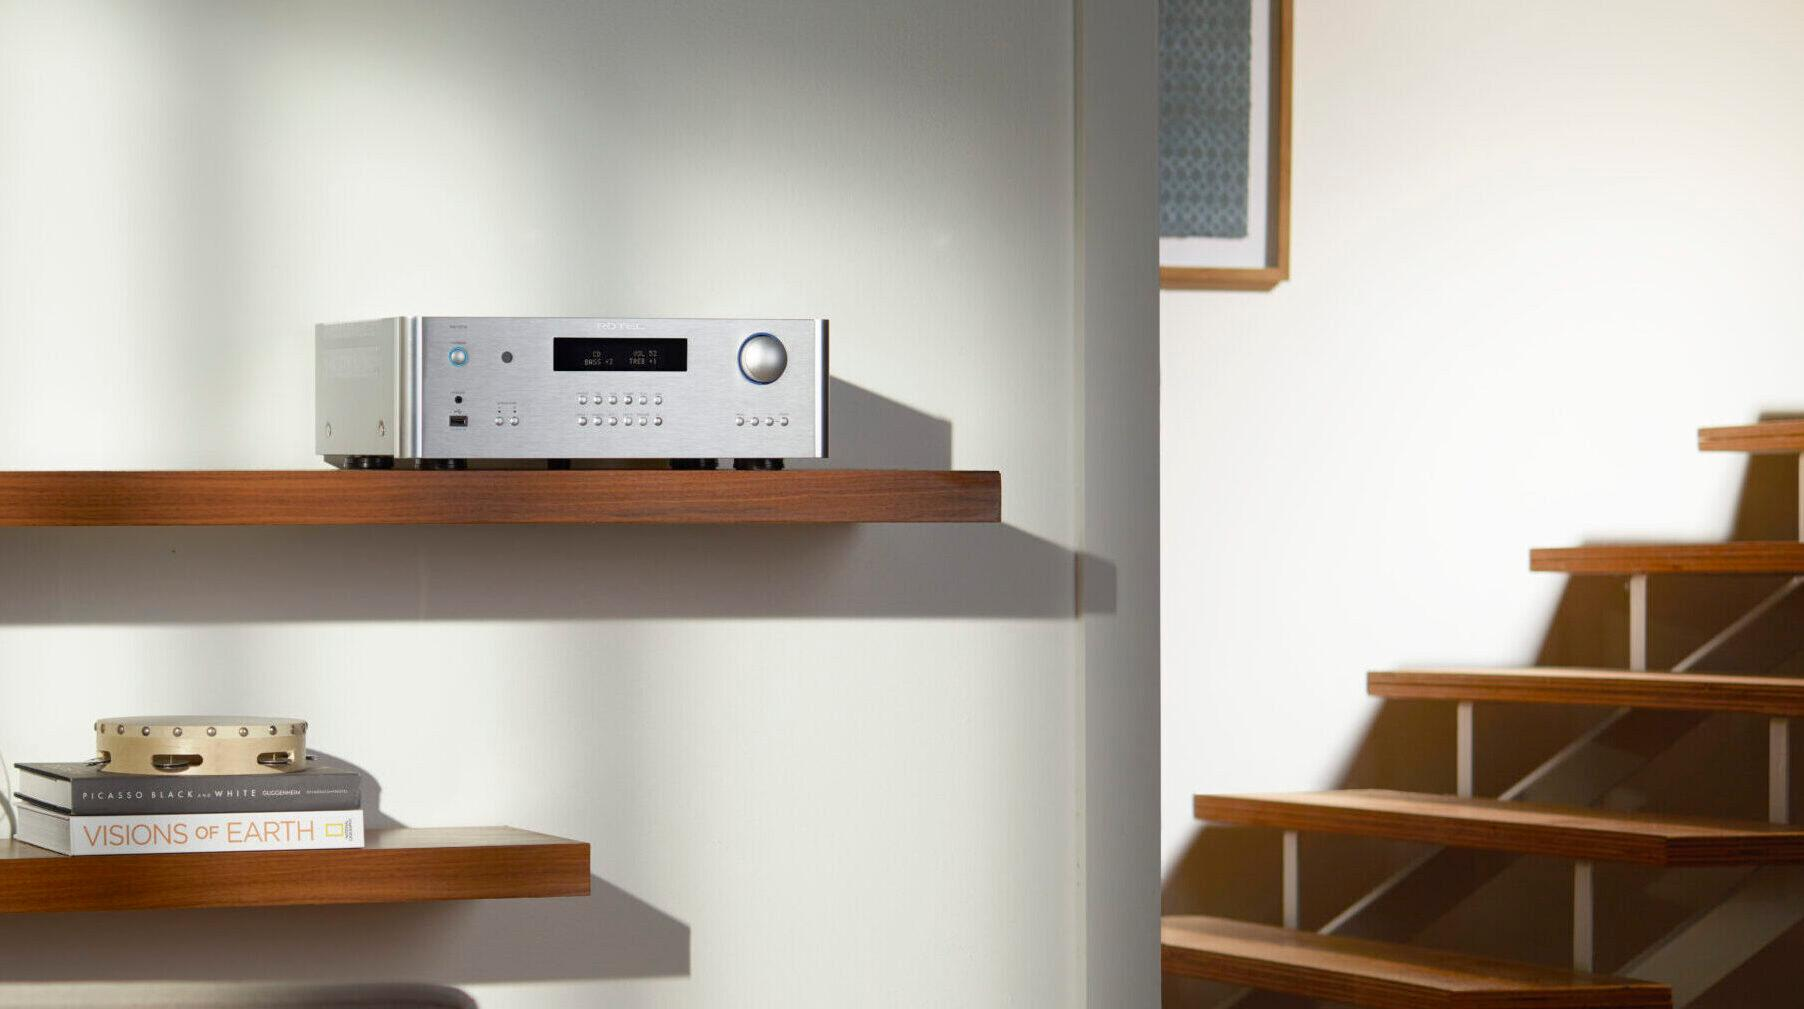 The Rotel RA-1572 has it where it counts - Dennis thinks it might be the the Millennium Falcon of integrated stereo amplifiers. Read on for more.